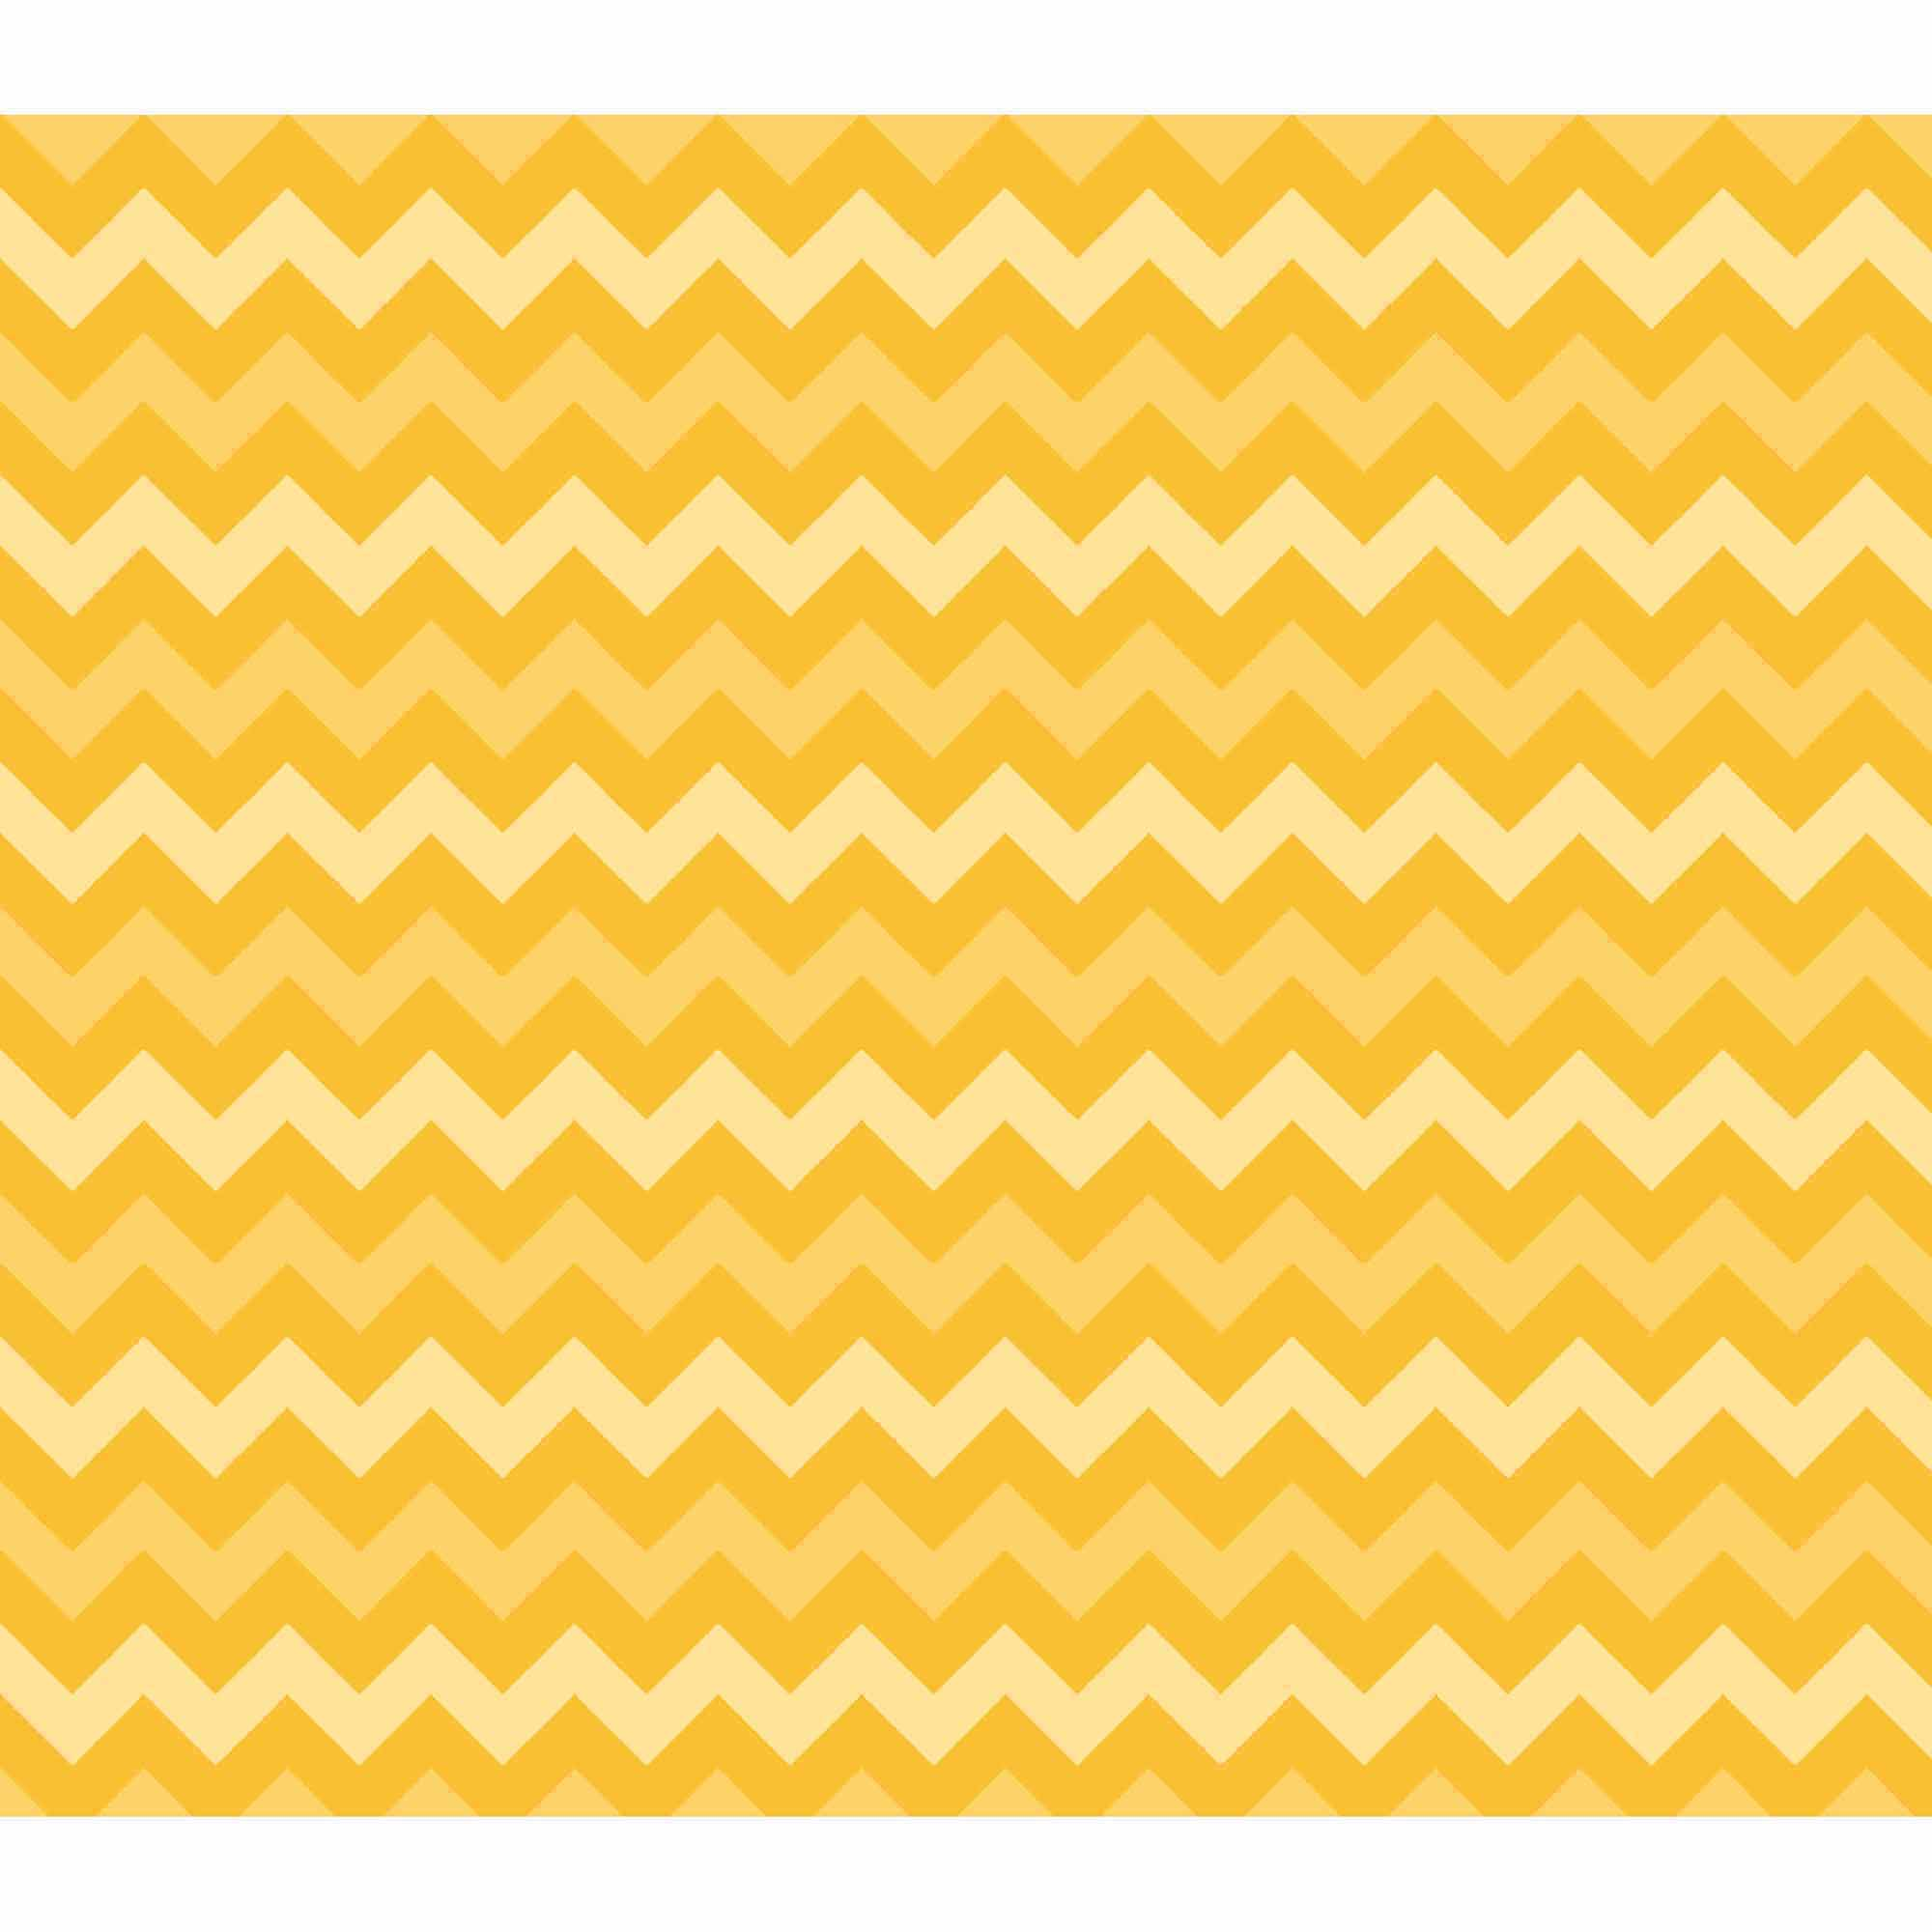 Springs Creative Cotton Blenders Tonal Chevron, Golden Yellow, Fabric by the Yard